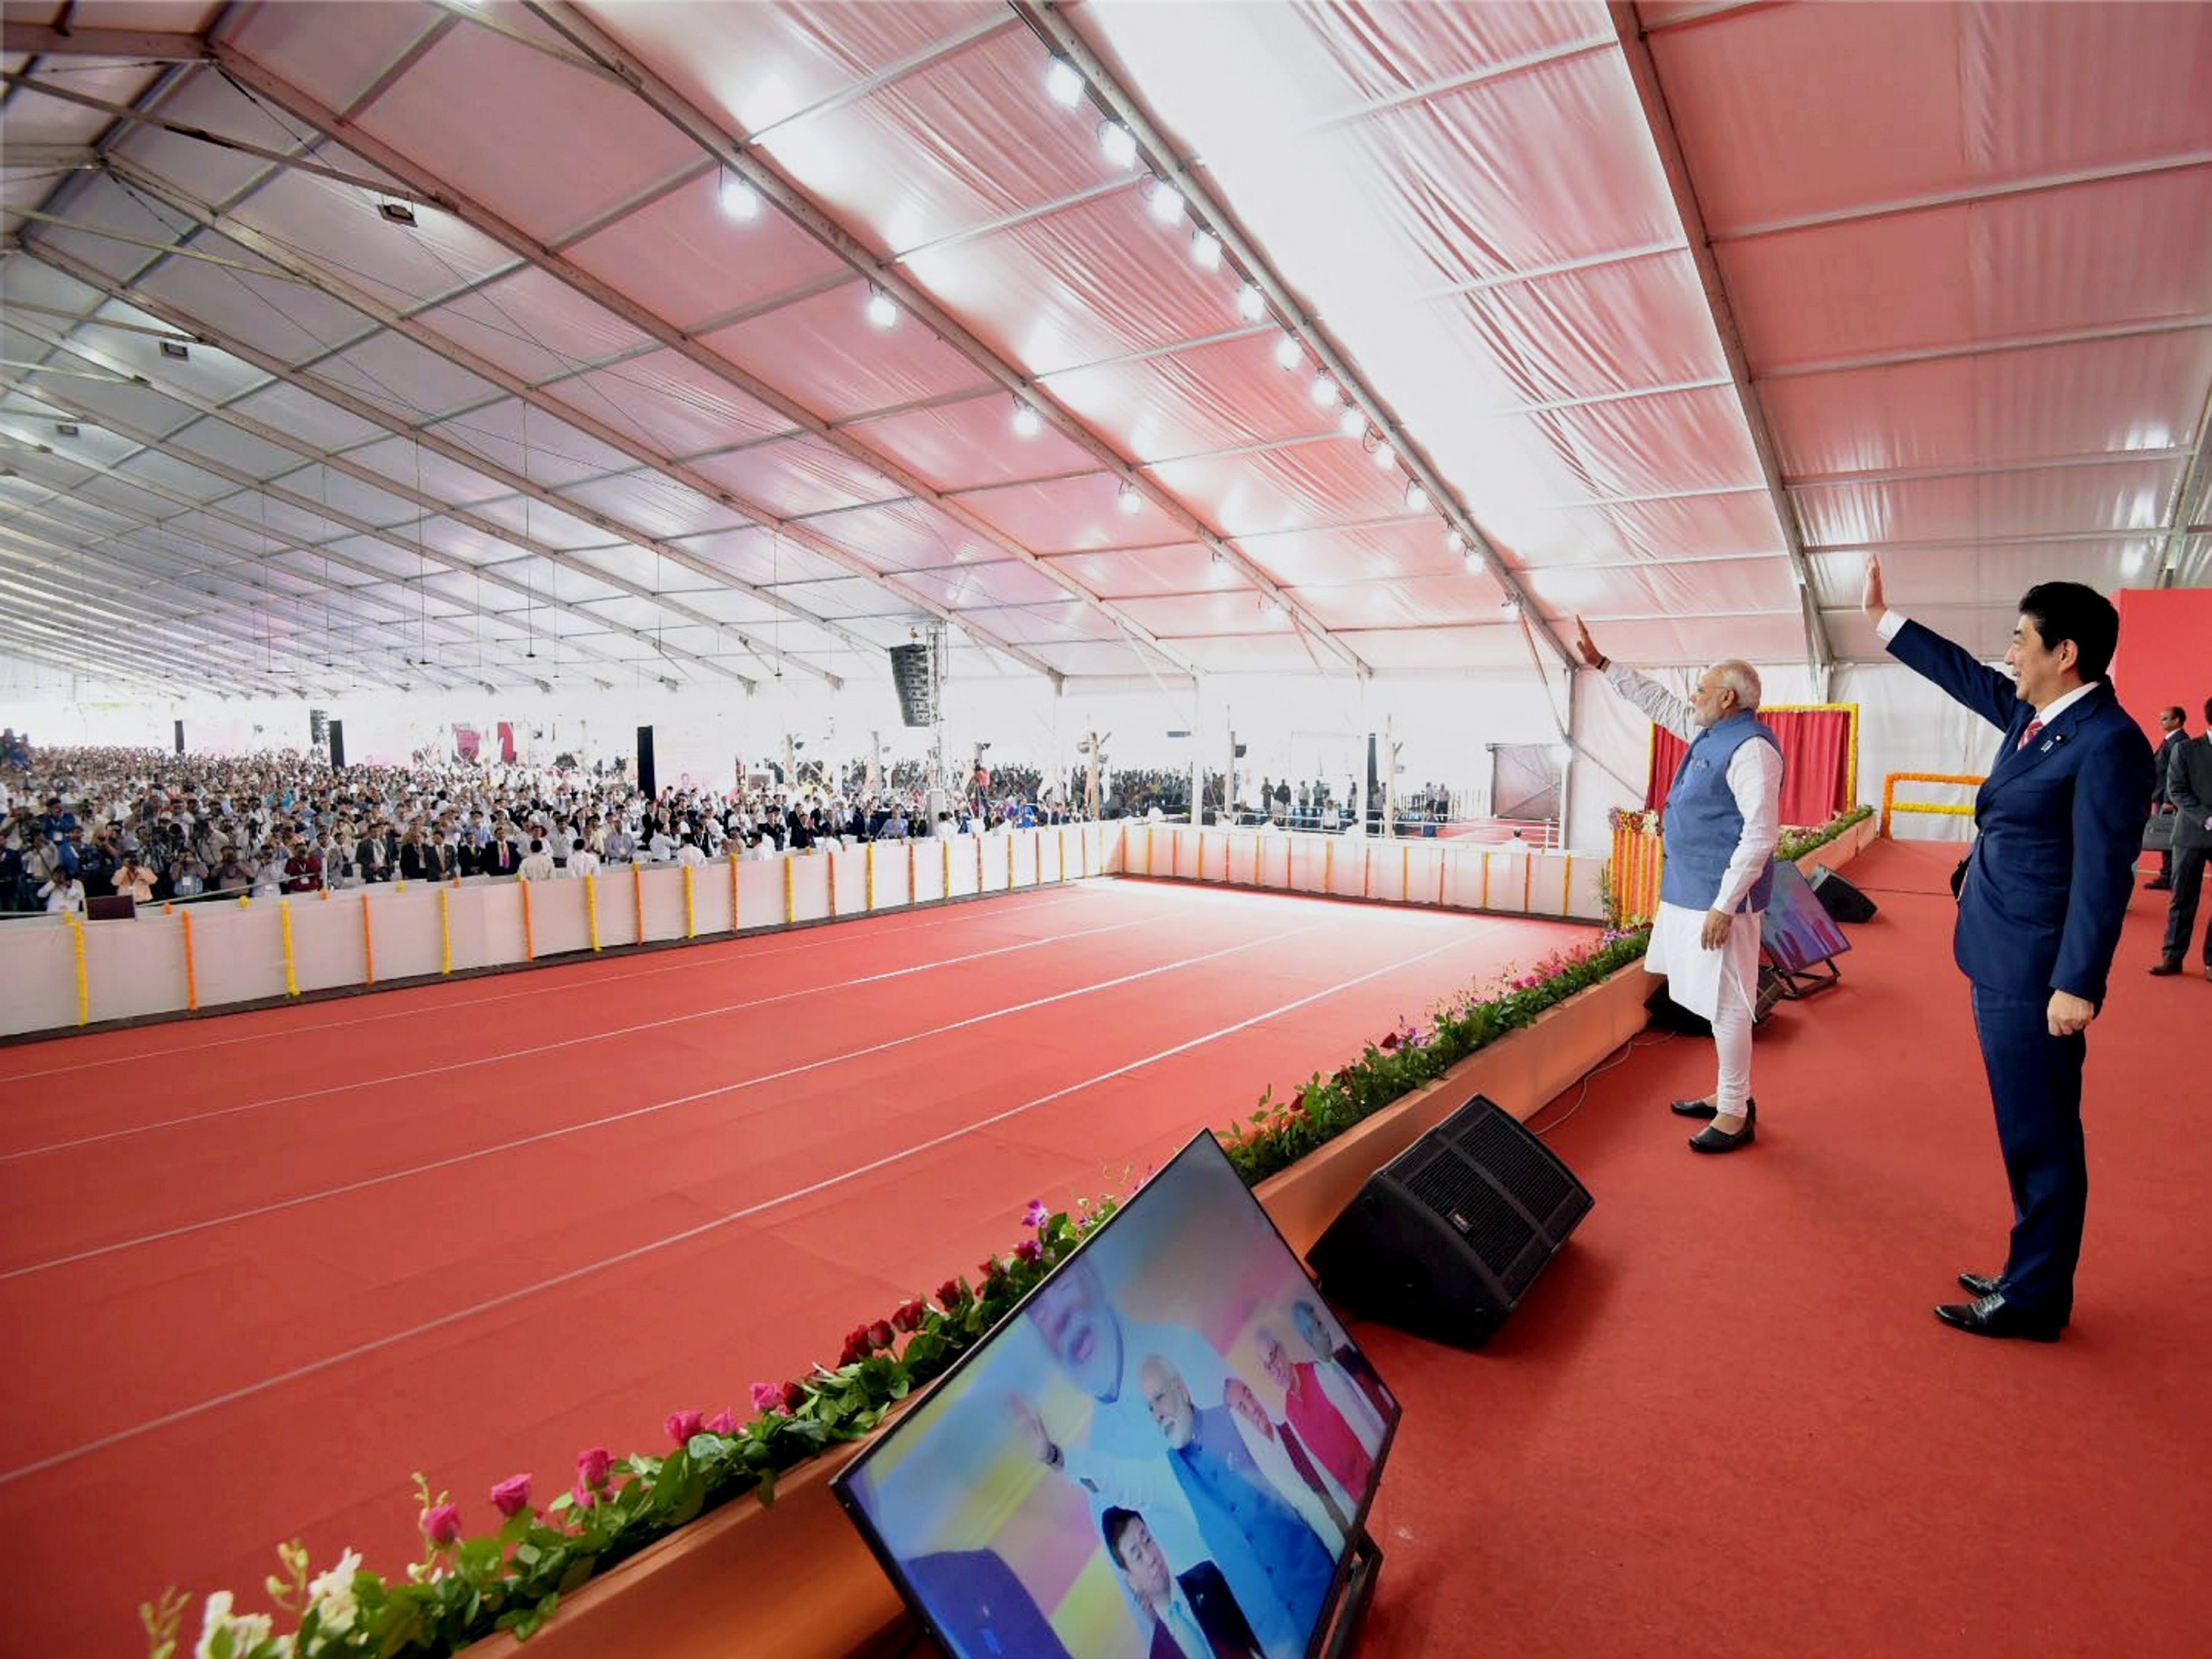 Ahmedabad: Prime Minister Narendra Modi and his Japanese counterpart Shinzo Abe during the ground breaking ceremony for high speed rail project in Ahmedabad on Thursday. PTI Photo/ MEA(PTI9_14_2017_000033B) *** Local Caption ***